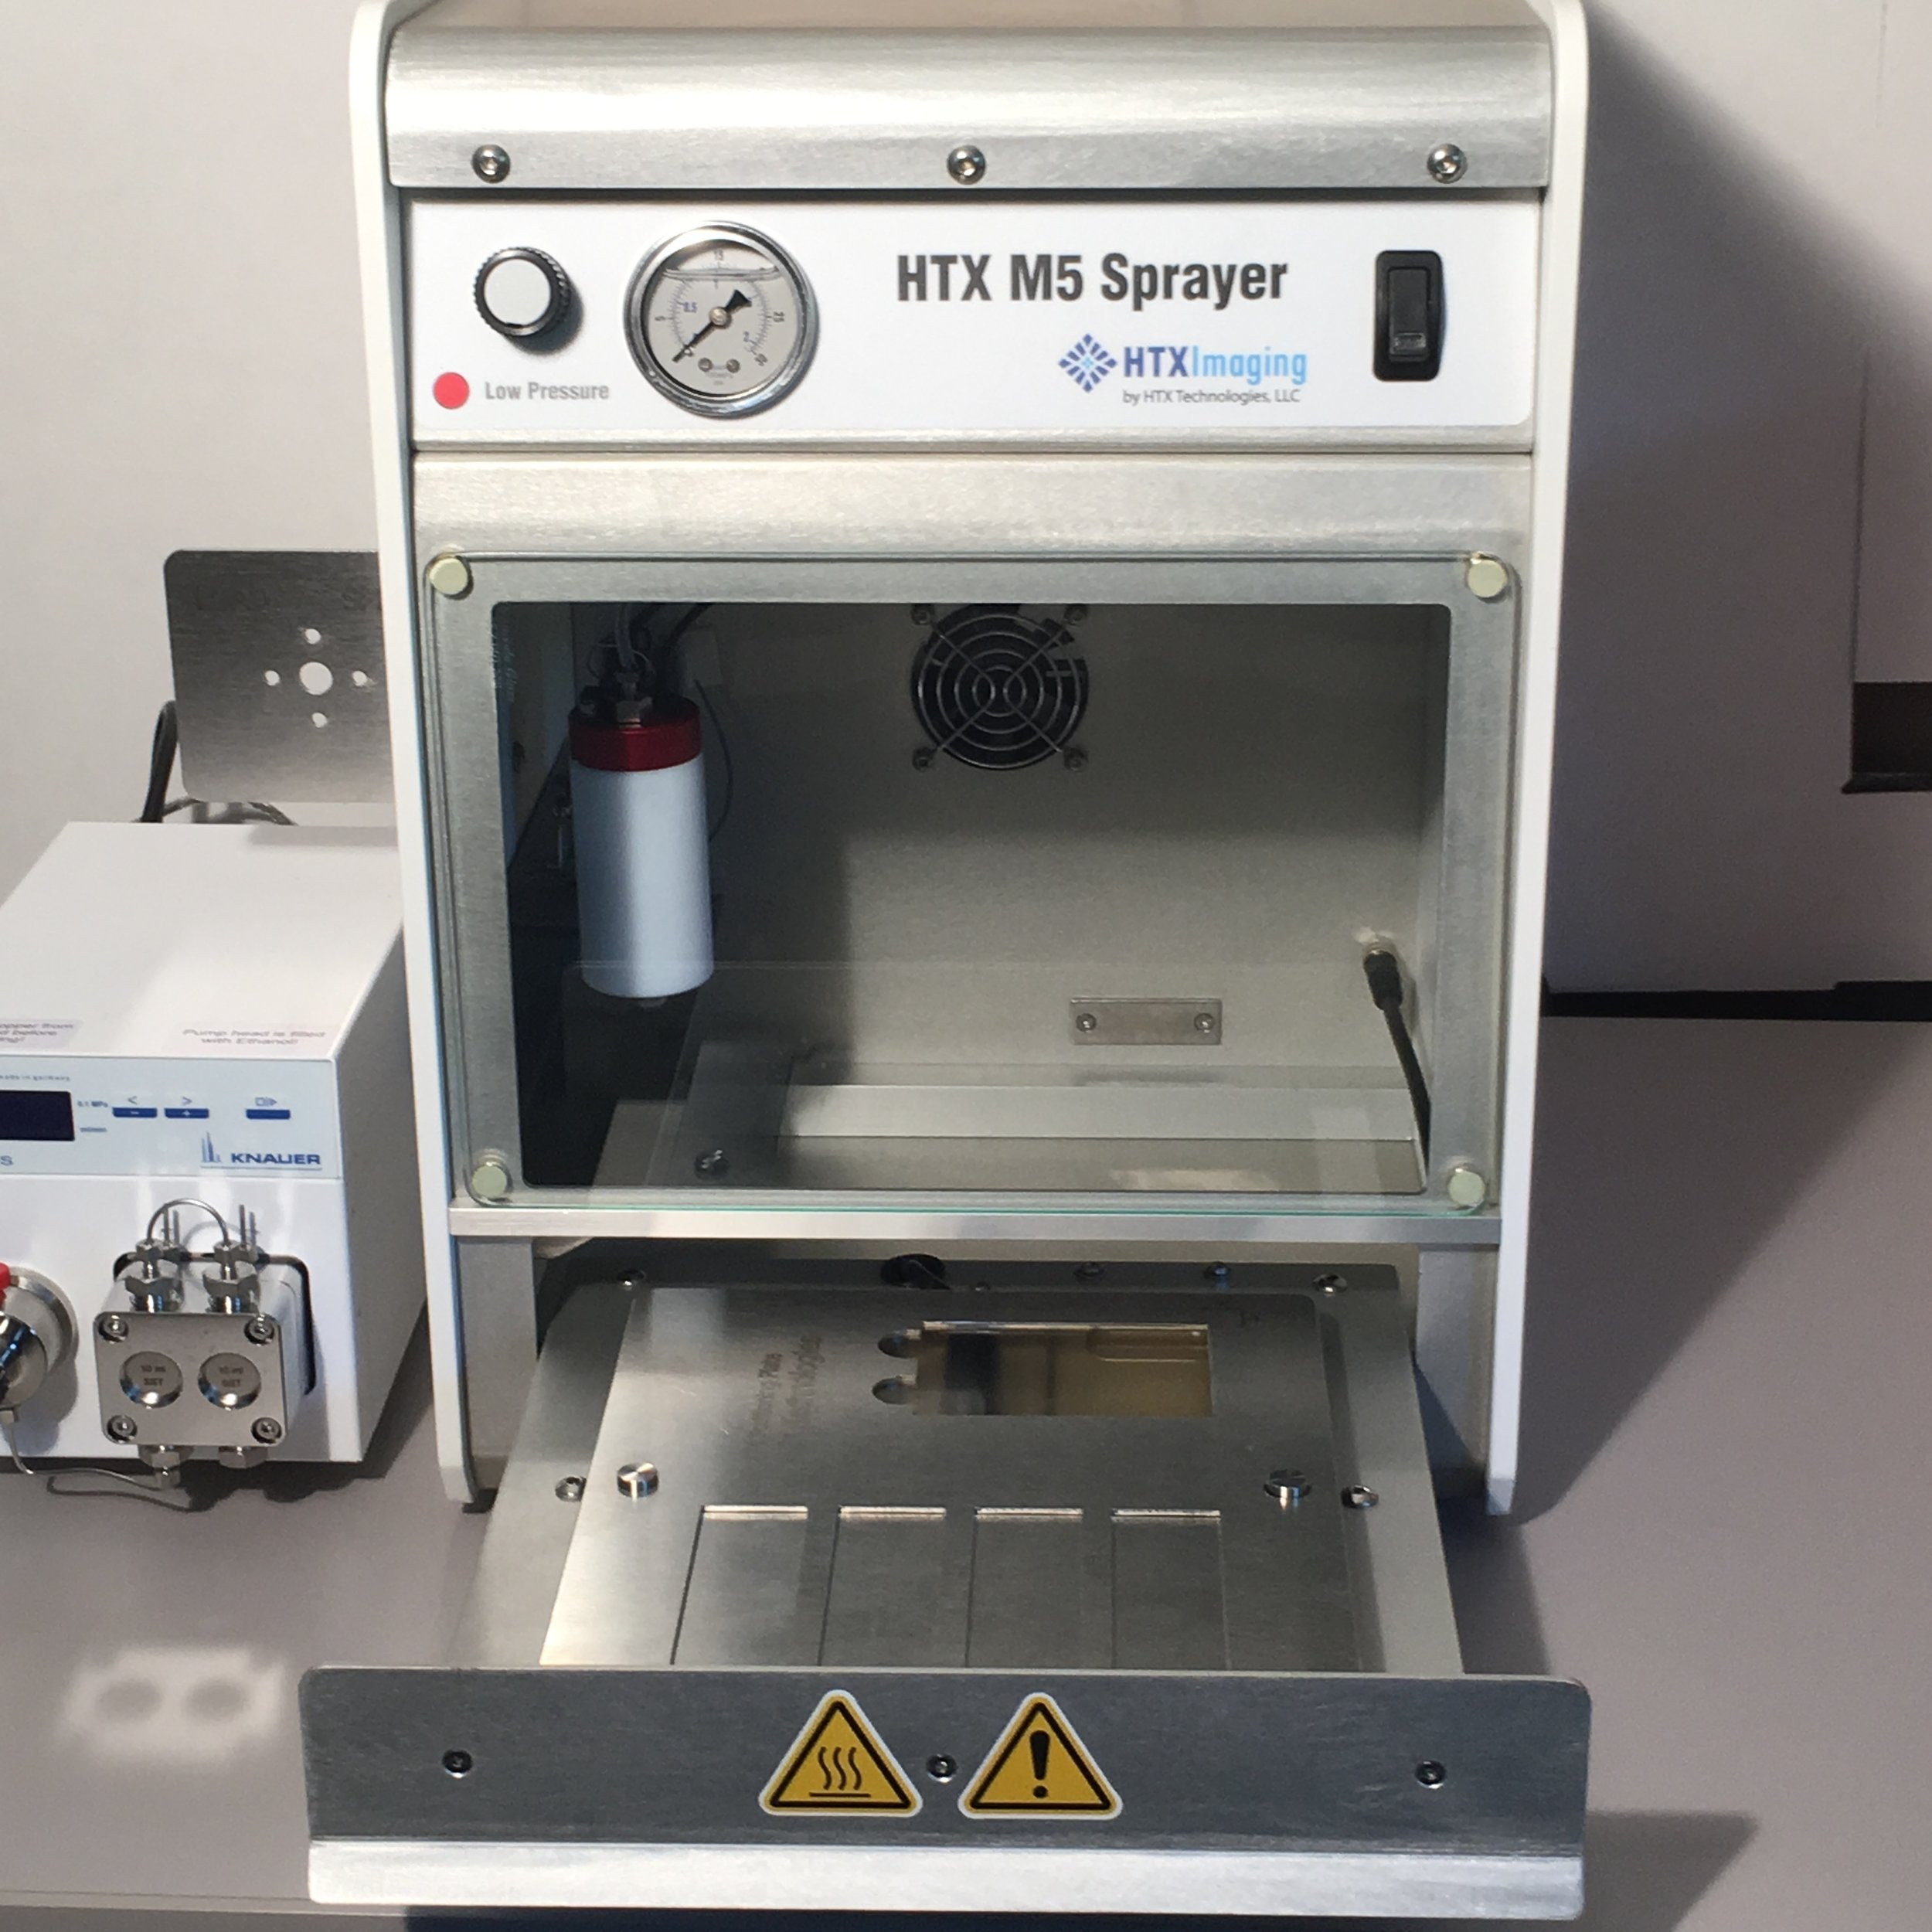 App Note #41 - Describes some of the first data acquired using the HTX M5 Sprayer heated sample tray, demonstrating improved MALDI image resolution.